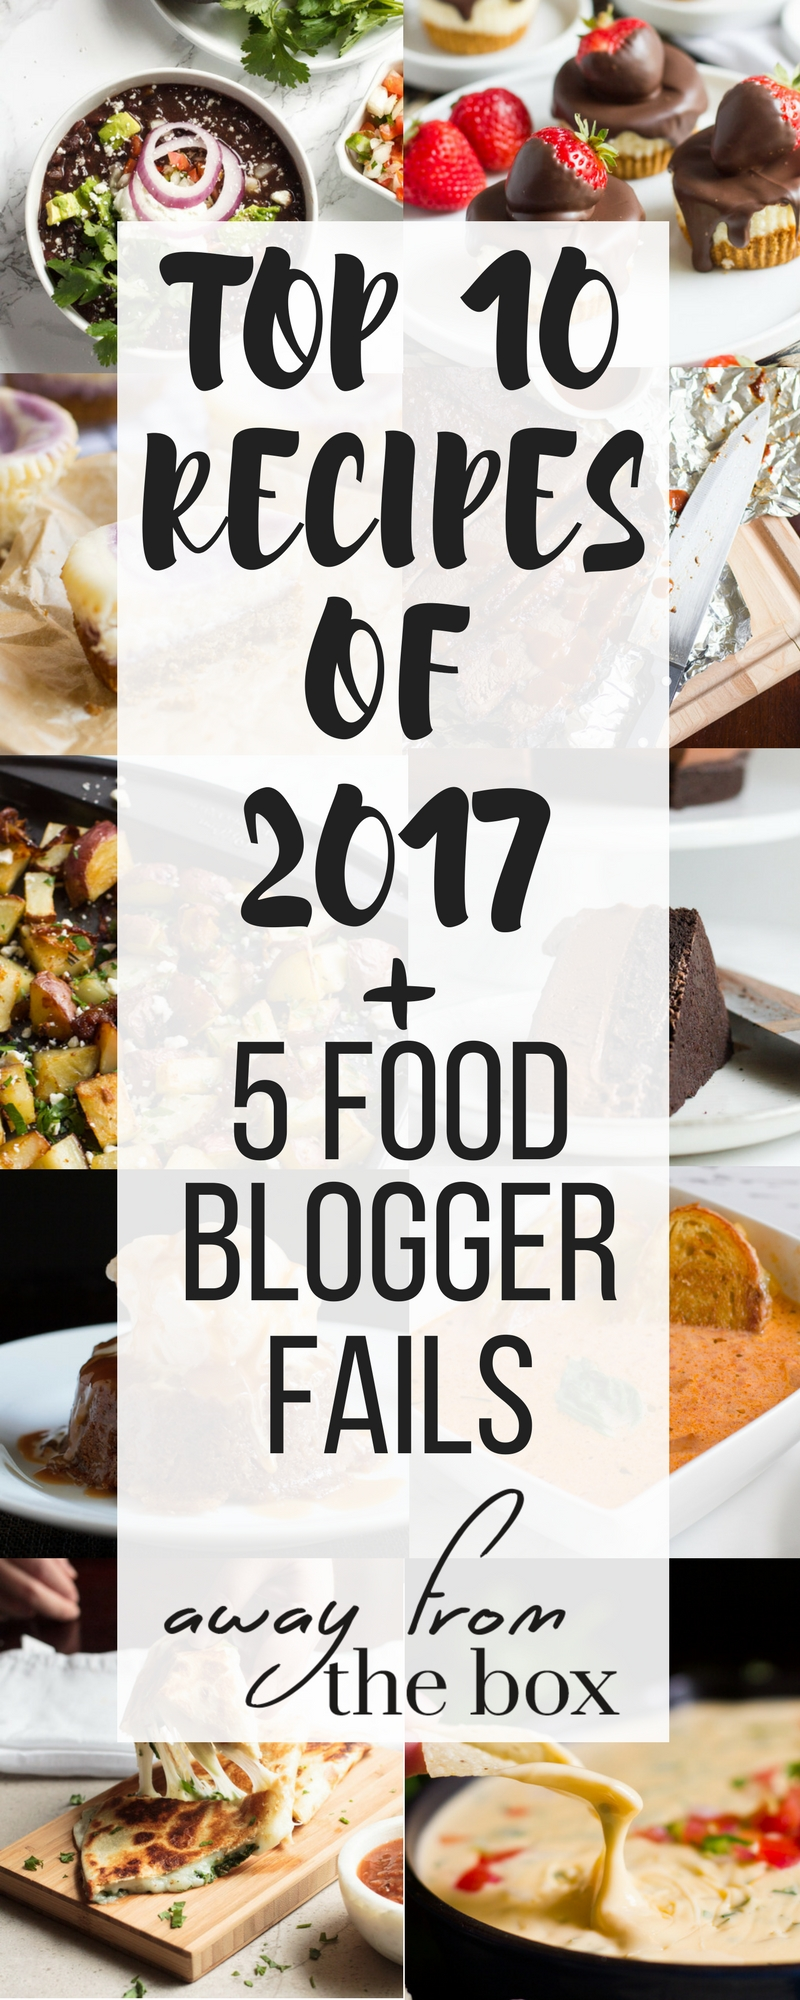 Top 10 recipes on Away From the Box in 2017! Also includes never before seen content - recipes that didn't make it to the blog!